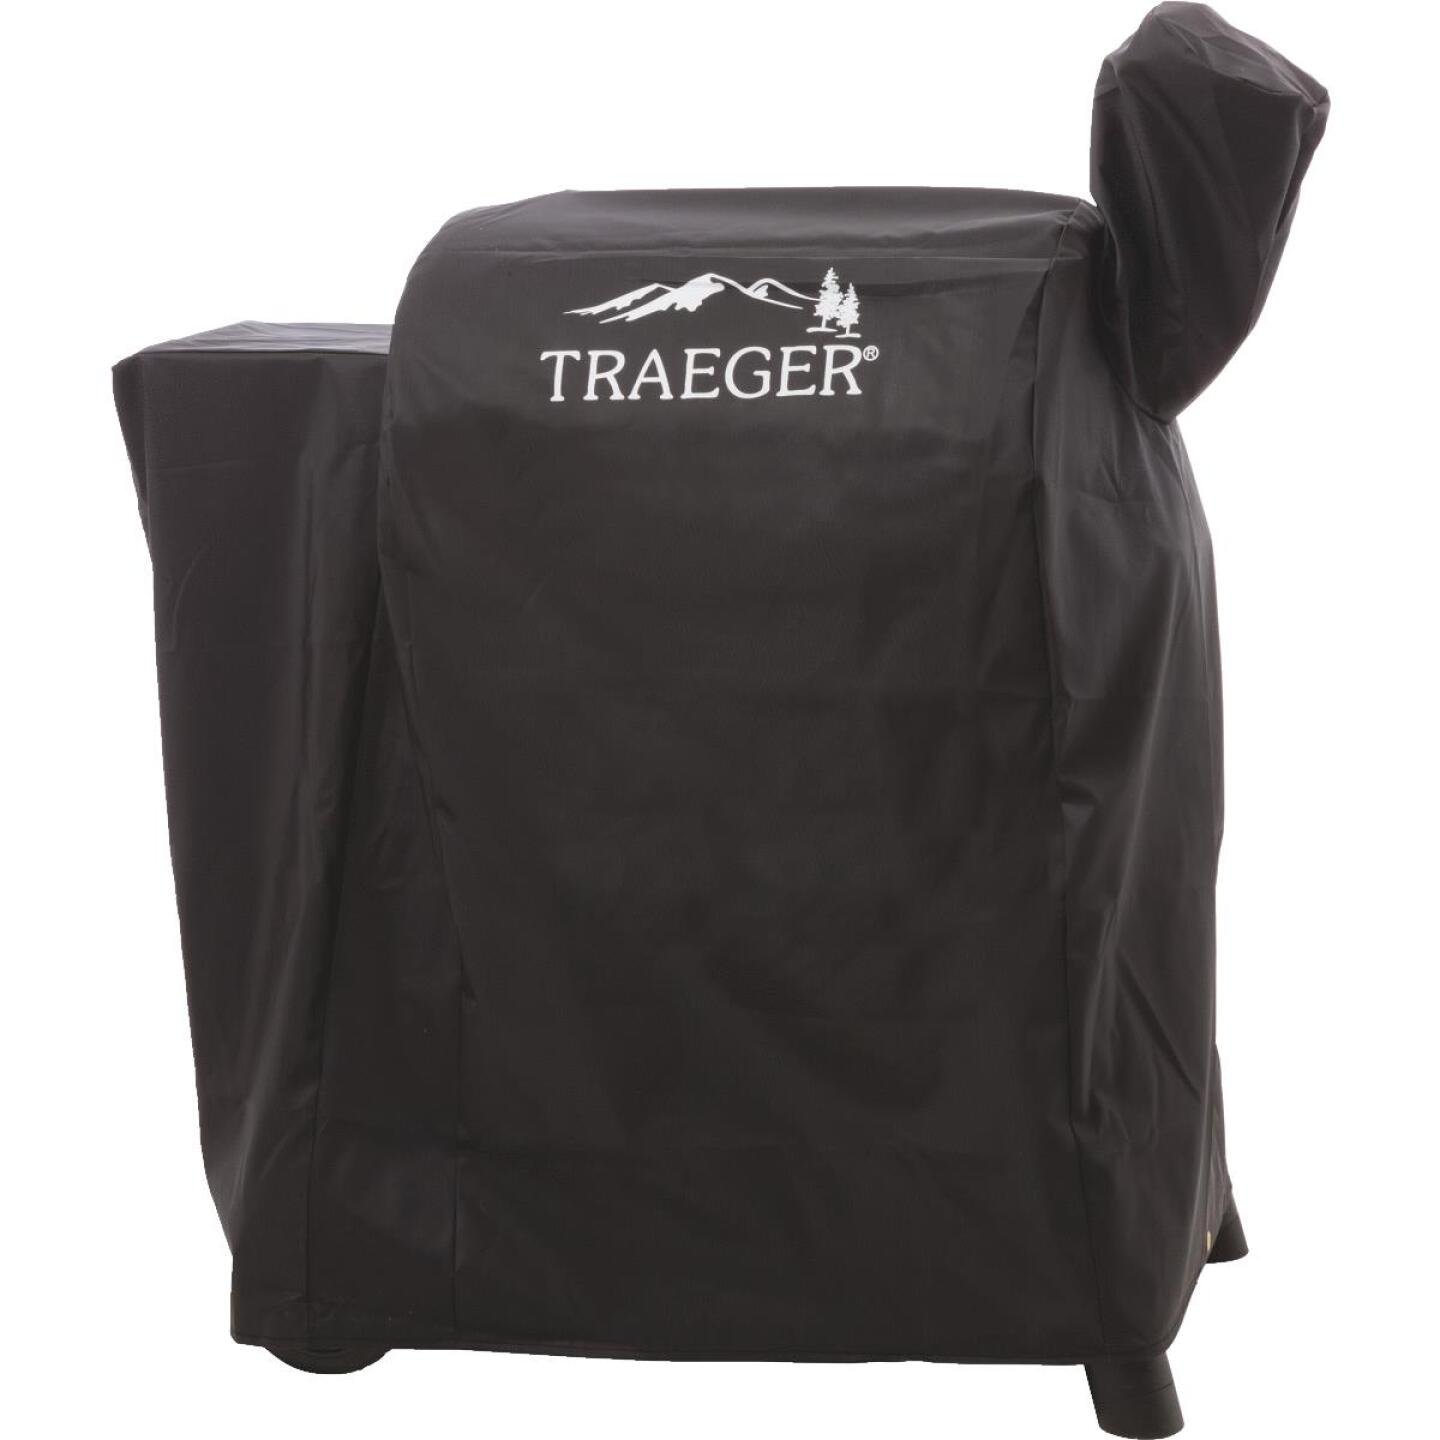 Traeger 22 Series 44 In. Black Polyester Full-Length Grill Cover Image 1